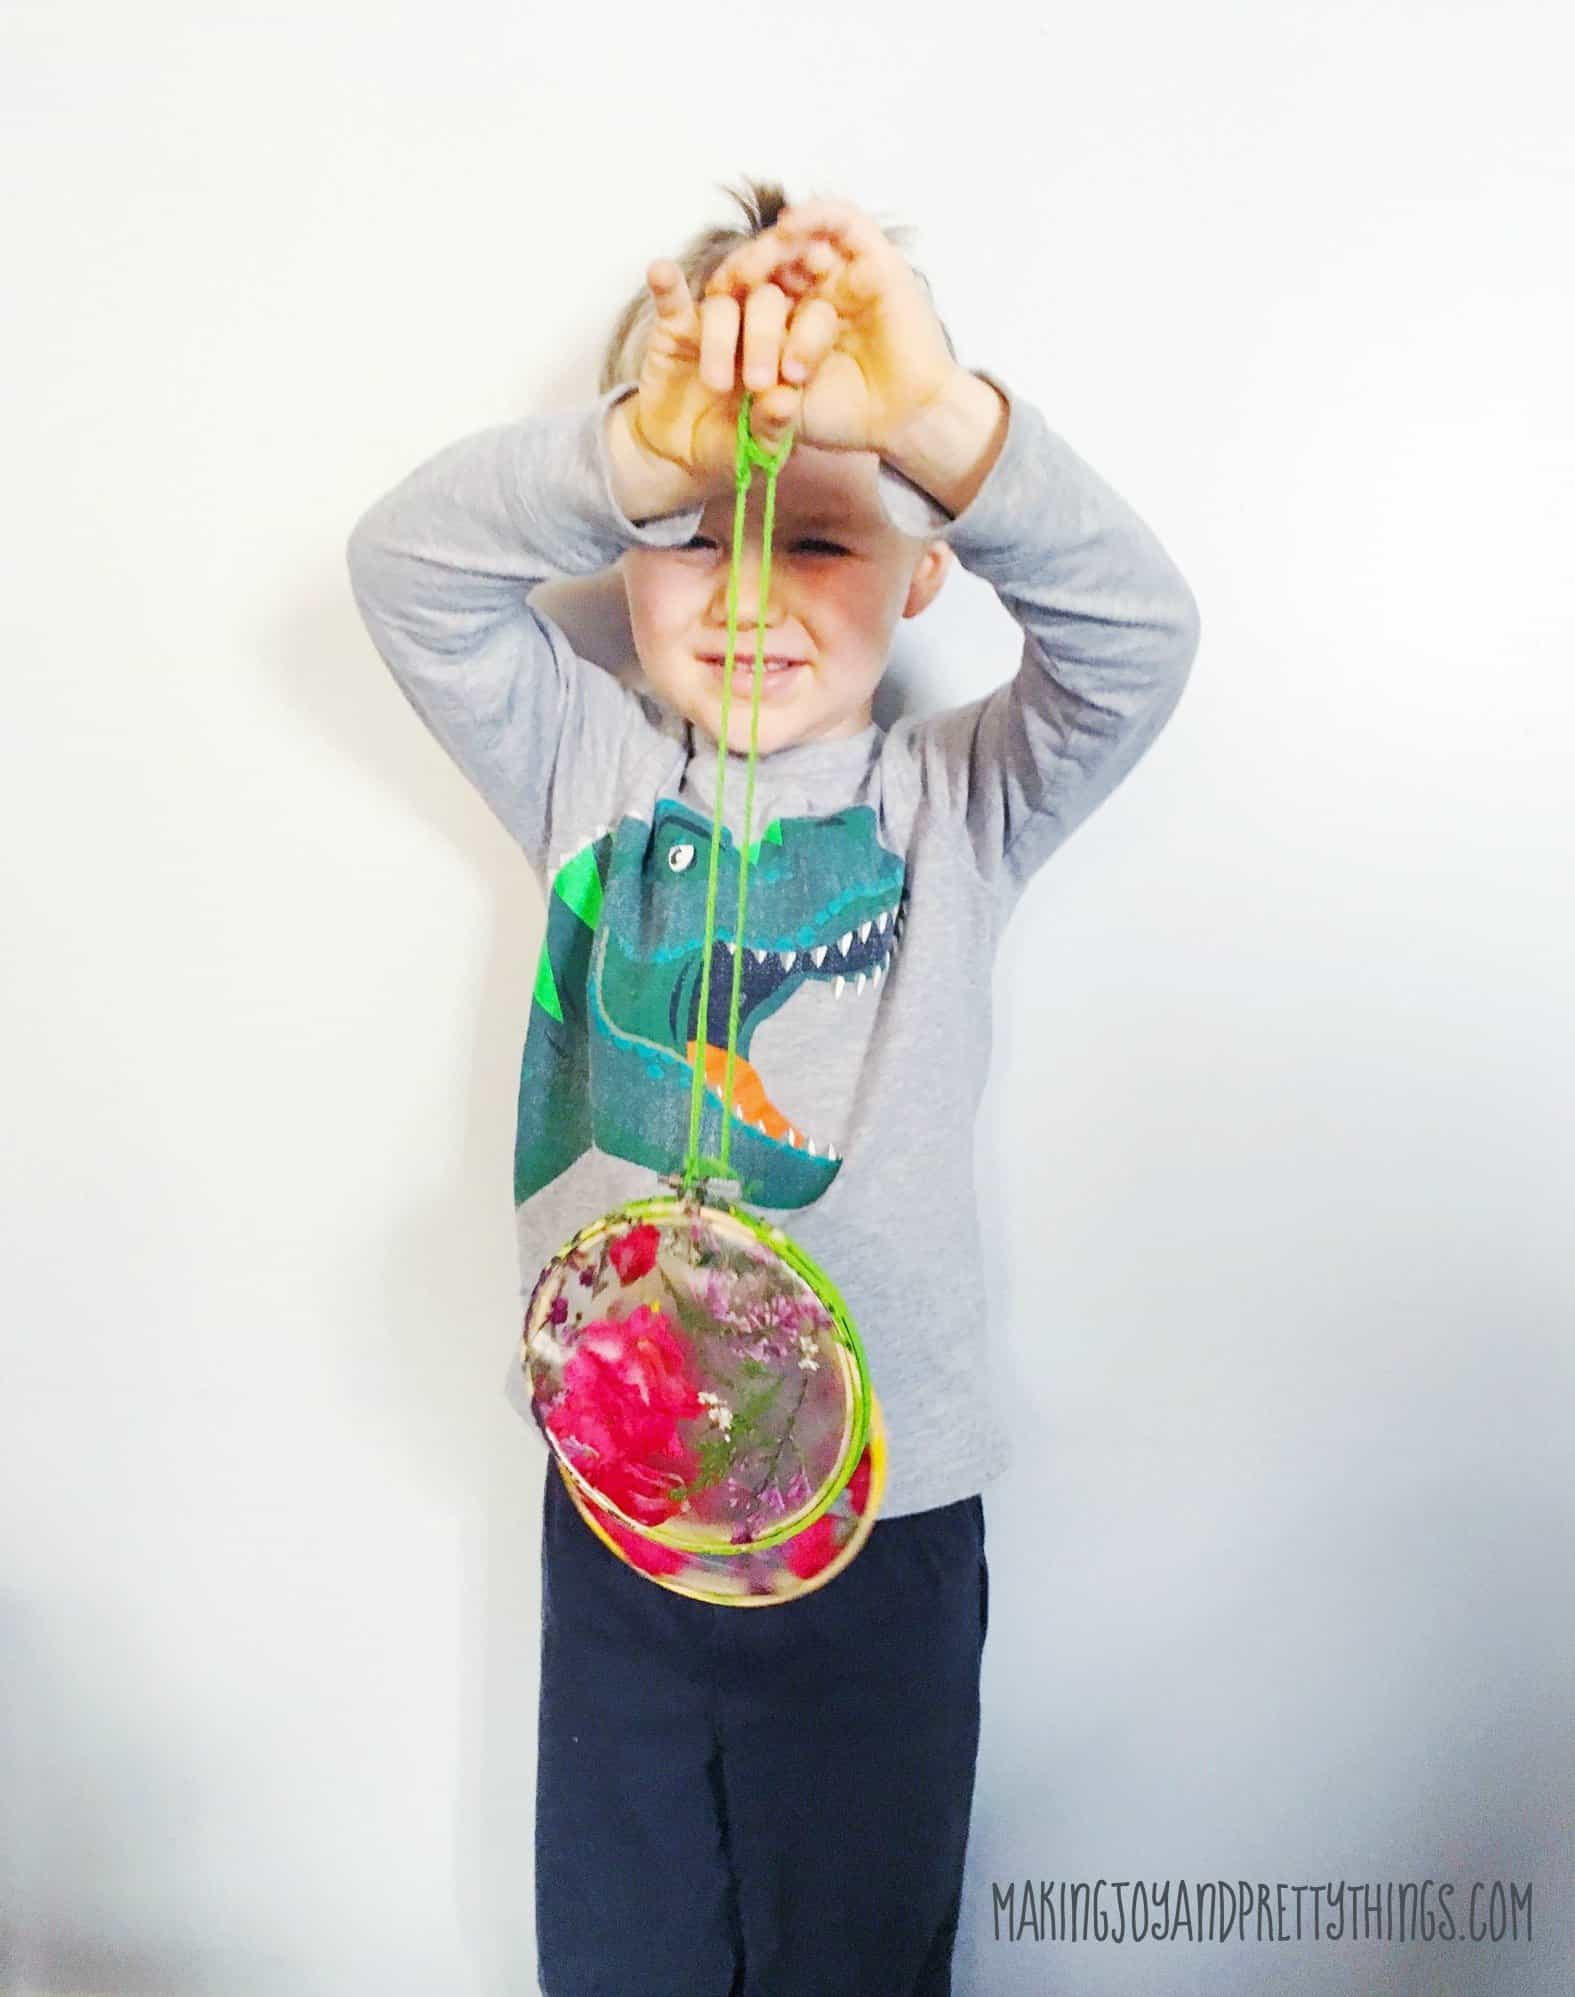 Easy DIY suncatcher craft for kids. Perfect gift for grandmothers and mothers for Mother's Day! Also great spring and summer outdoor craft for kids.